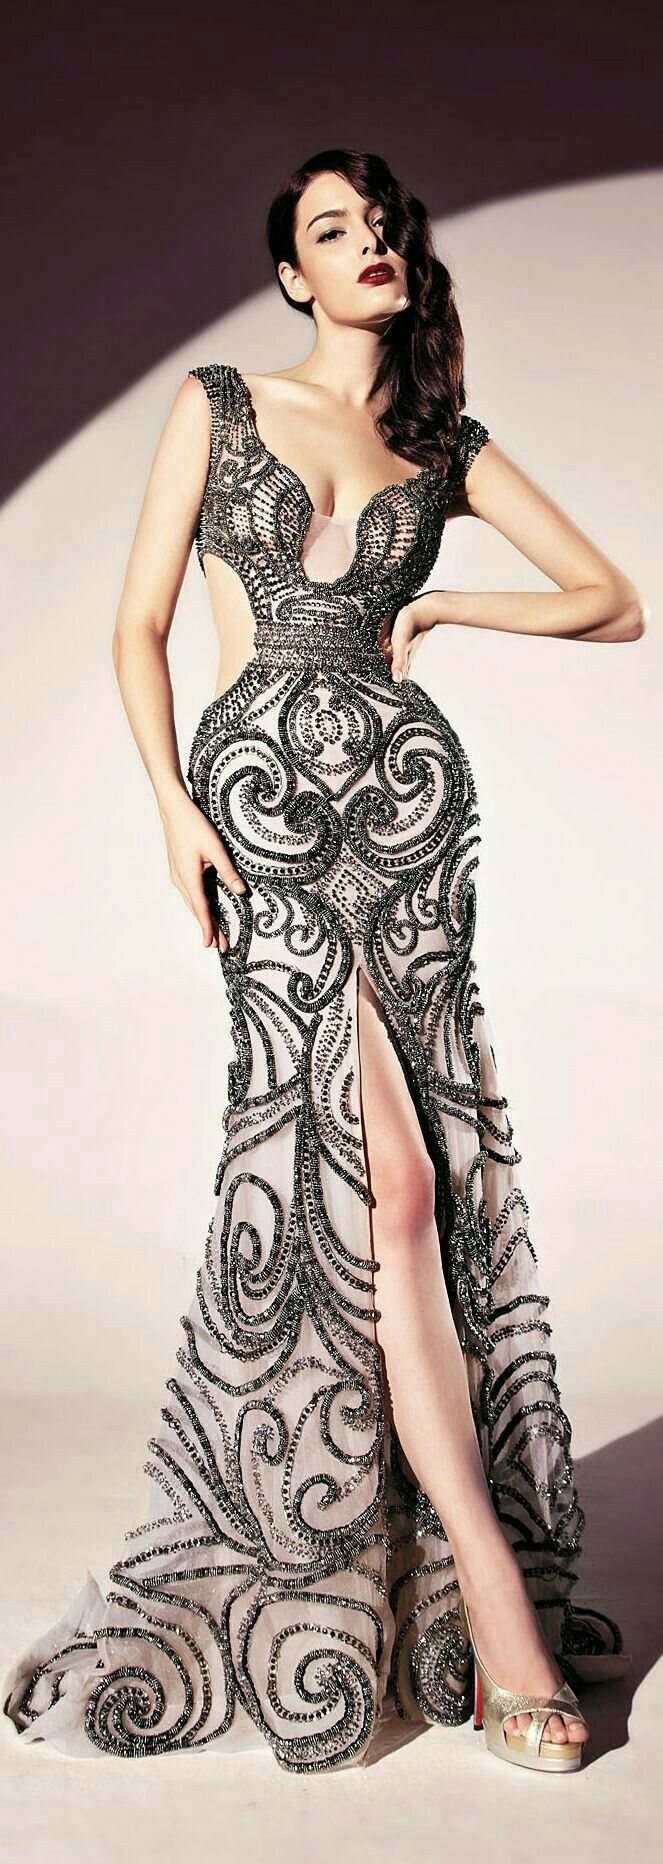 Lace bra under dress september 2019  best Runway Ready images on Pinterest  High fashion Party